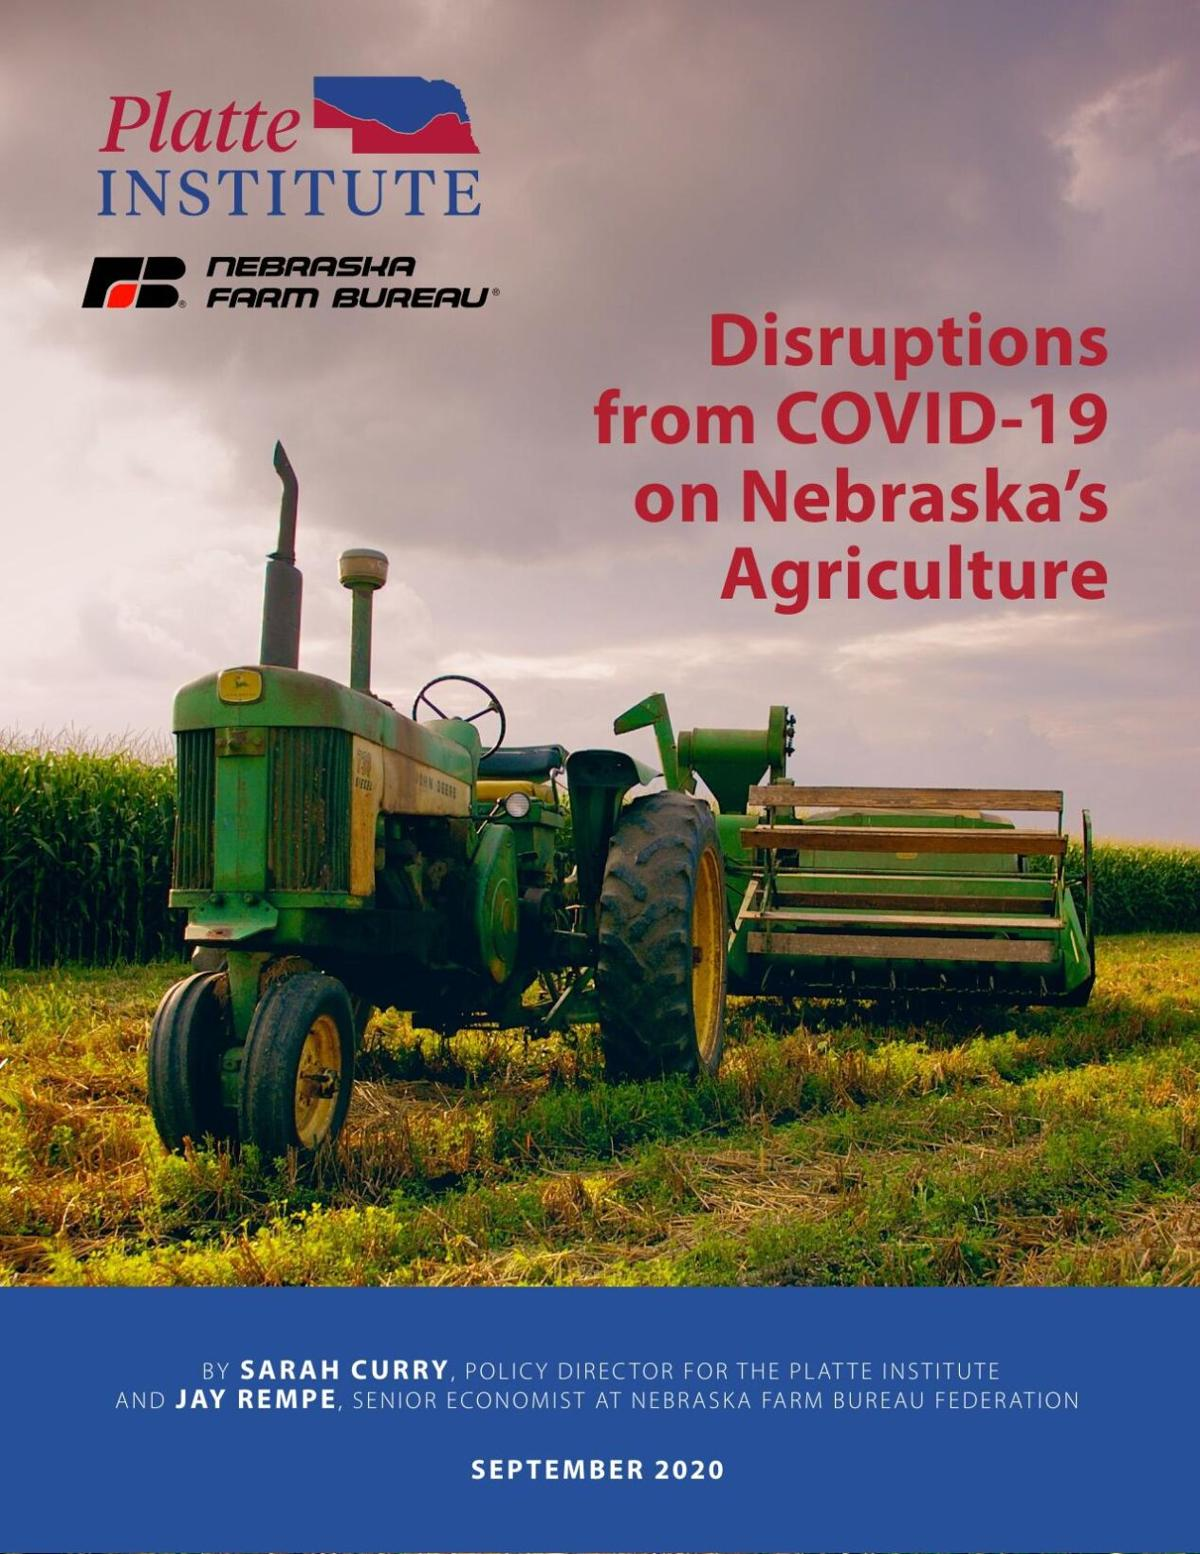 Disruptions from COVID-19 on Nebraska's Agriculture